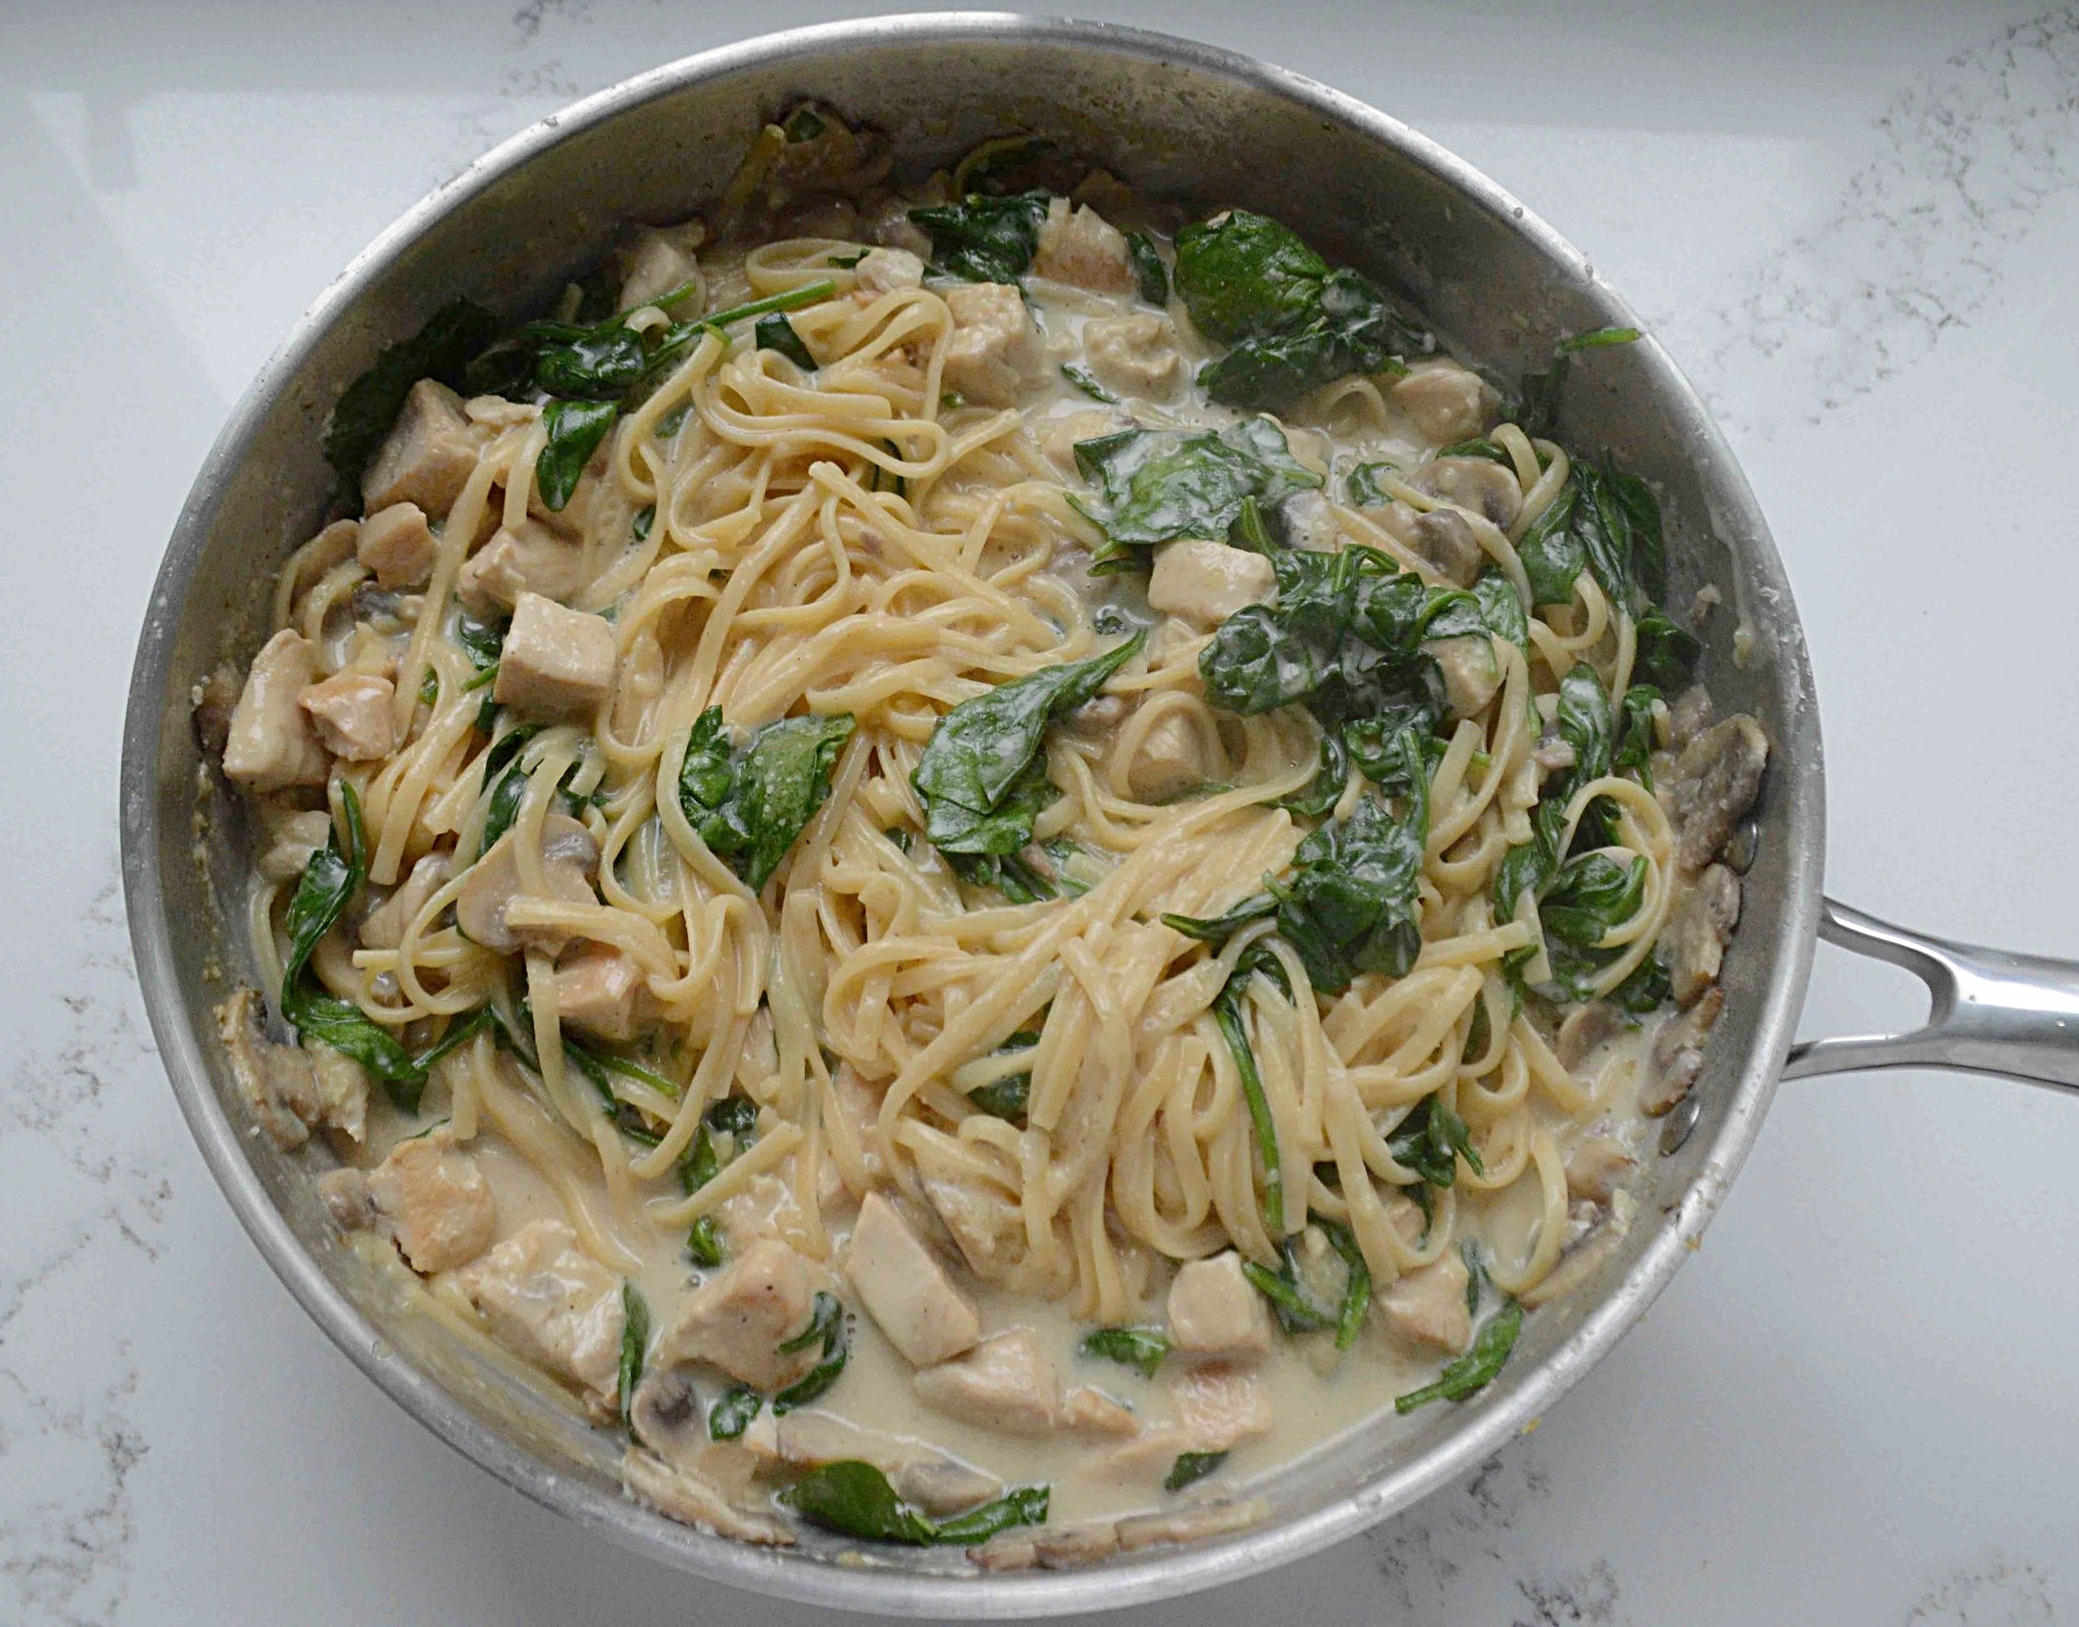 One-Skillet Chicken with Mushrooms, Spinach and Pasta